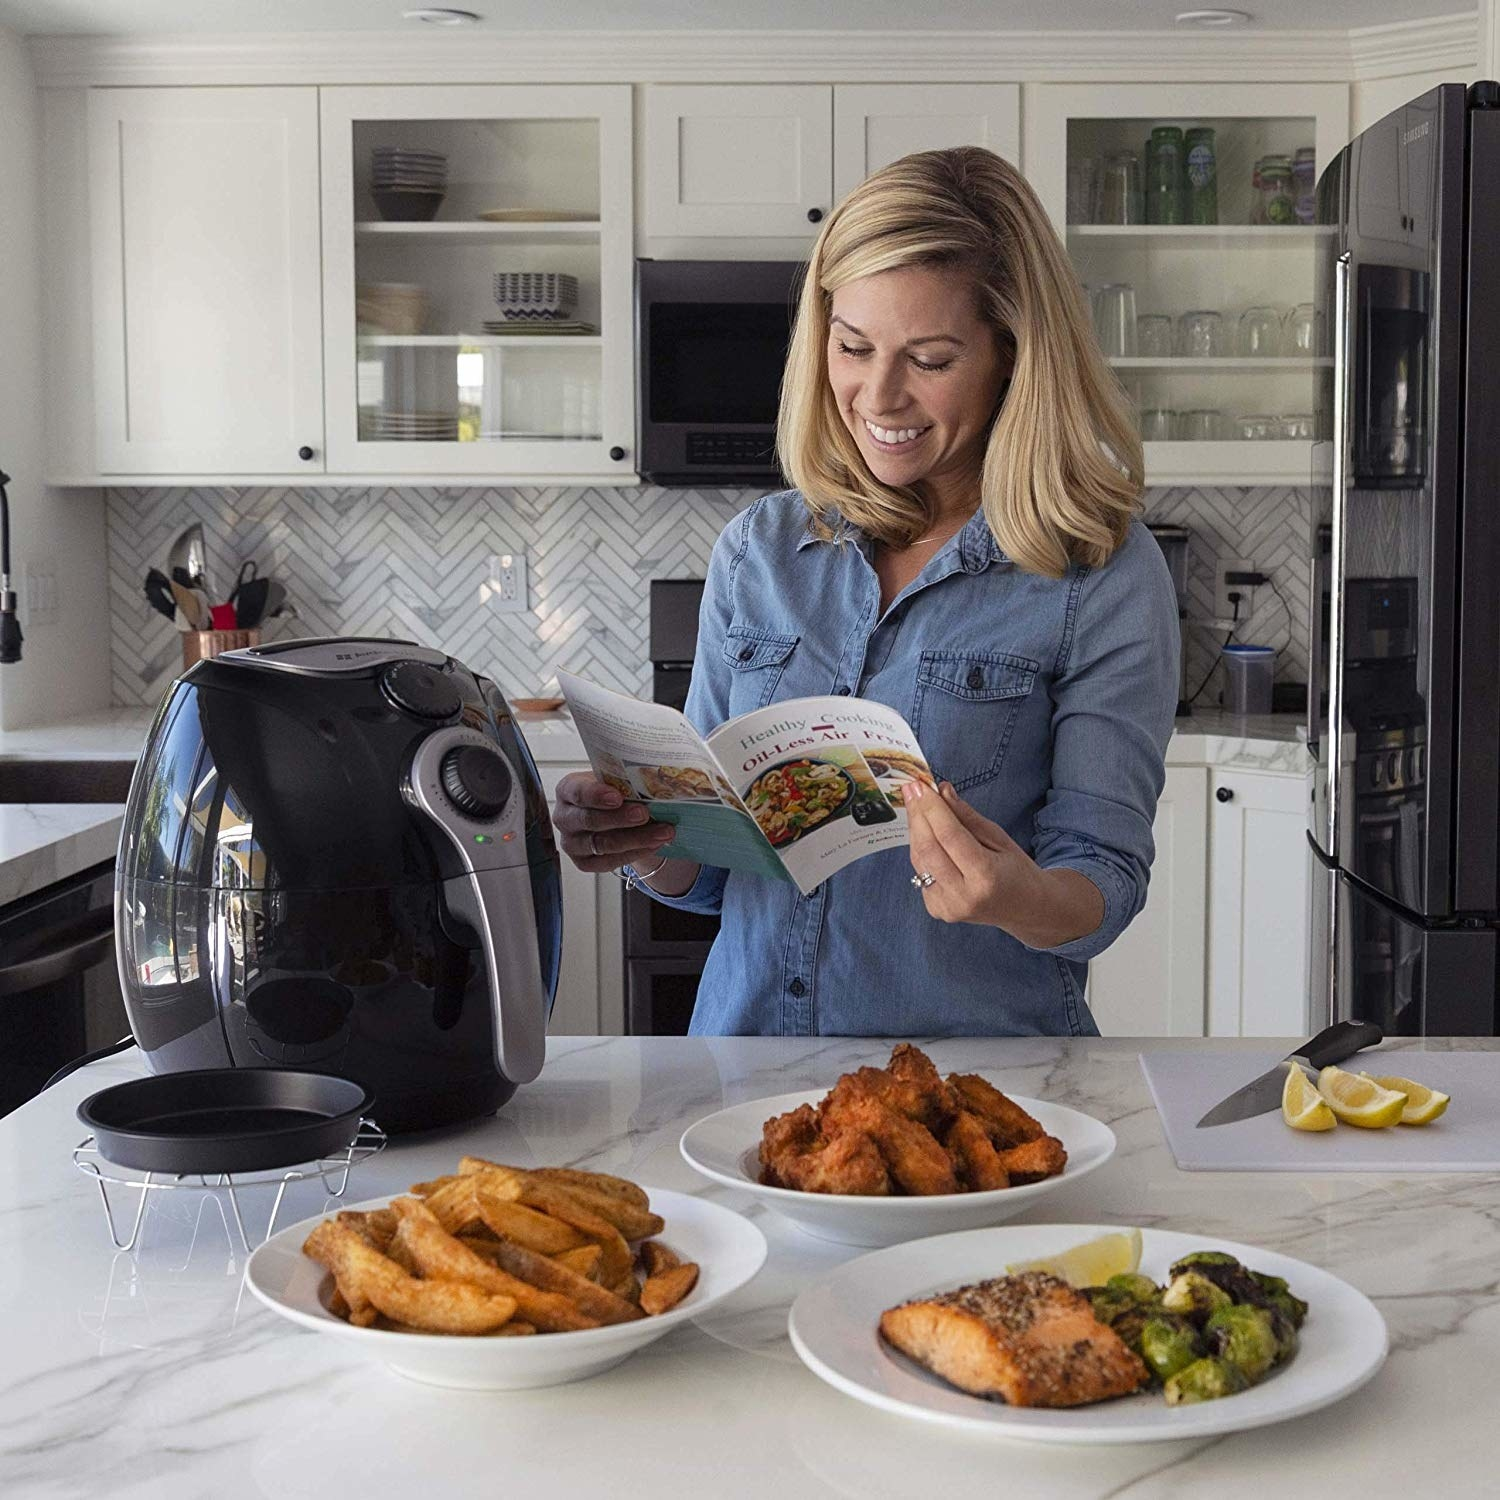 Model looking at the air fryer, reading the guide, with plates of air fried fries, wings, and salmon and brussels sprouts on the counter